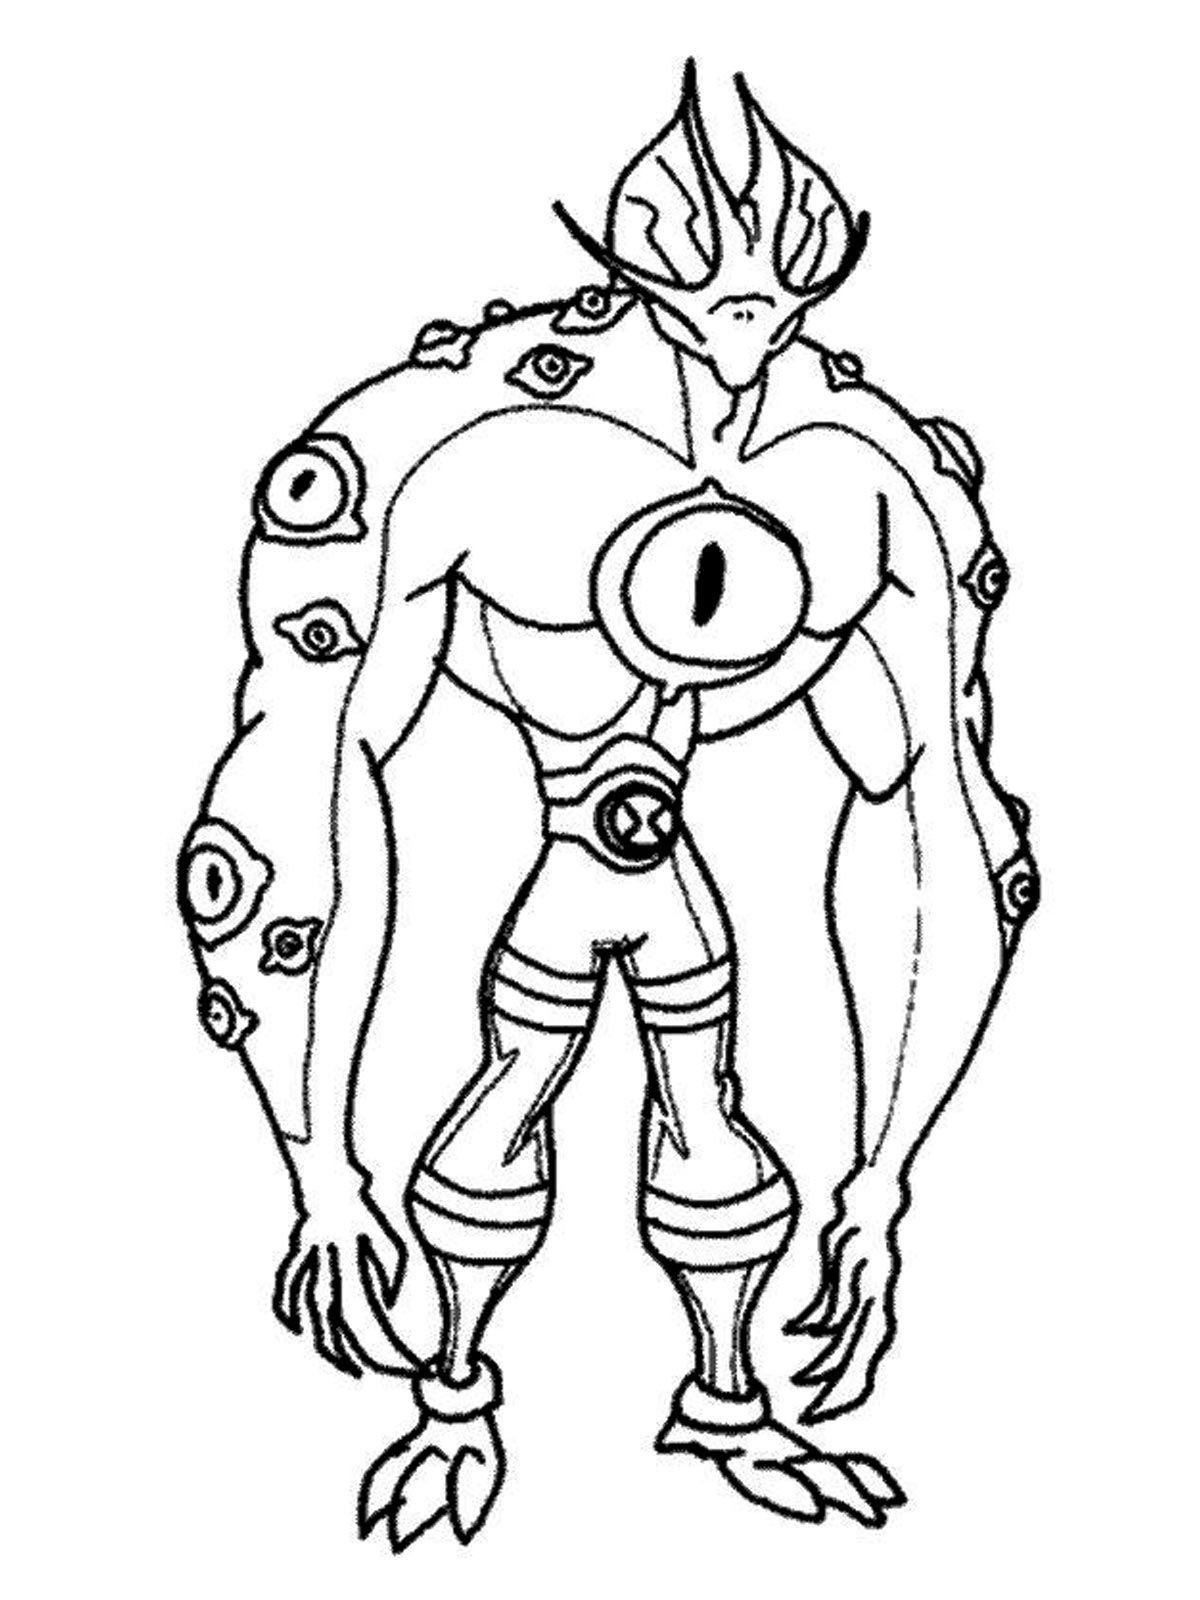 Ben 10 Coloring Page Ben Ten Coloring Page 320 Cartoon Coloring Pages Halloween Coloring Pages Coloring Books